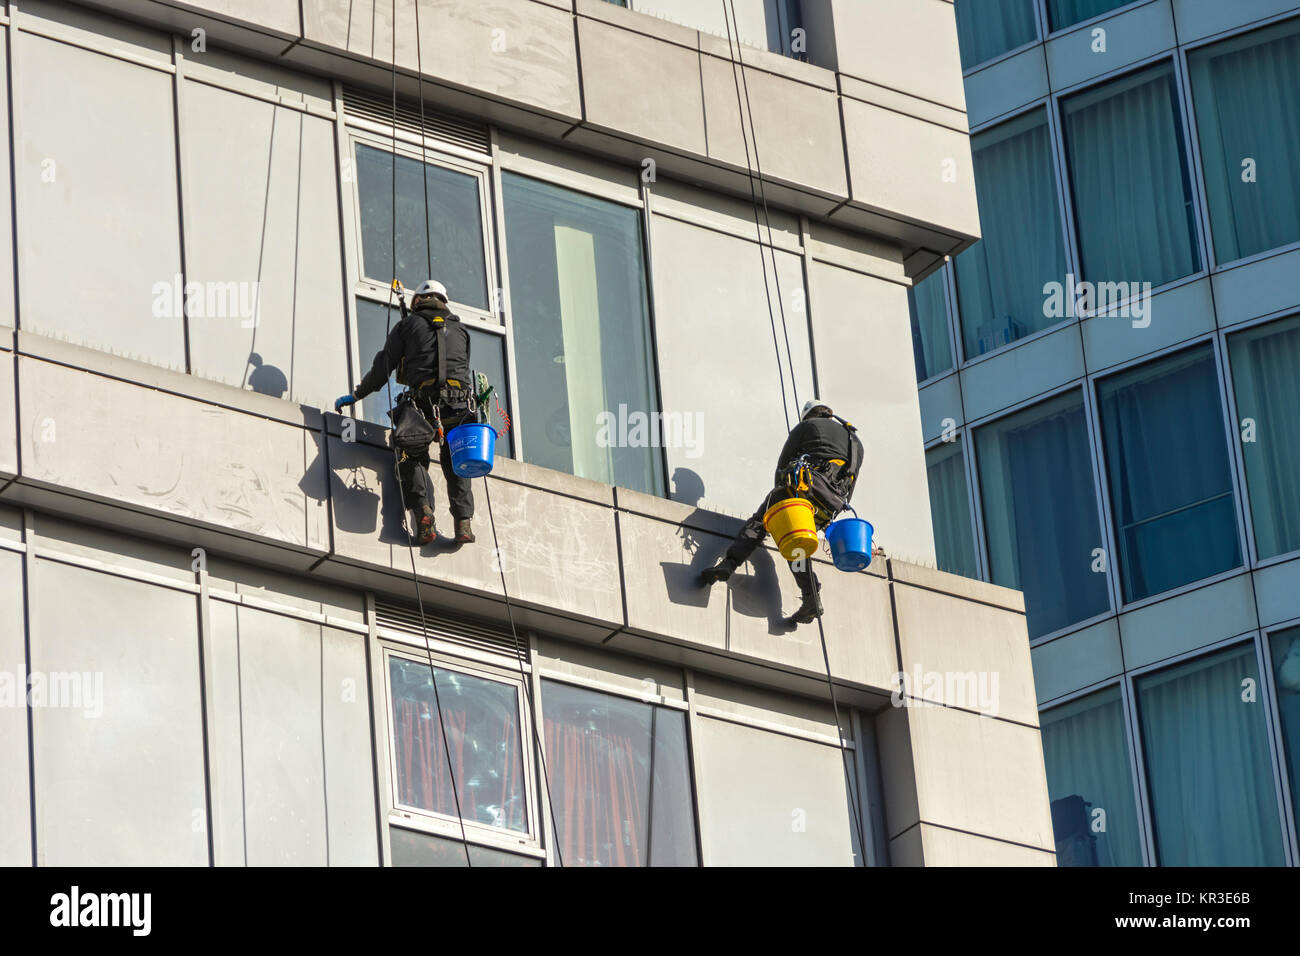 Two window cleaners using rope access techniques on a building near the Bull Ring, Birmingham, England, UK, - Stock Image